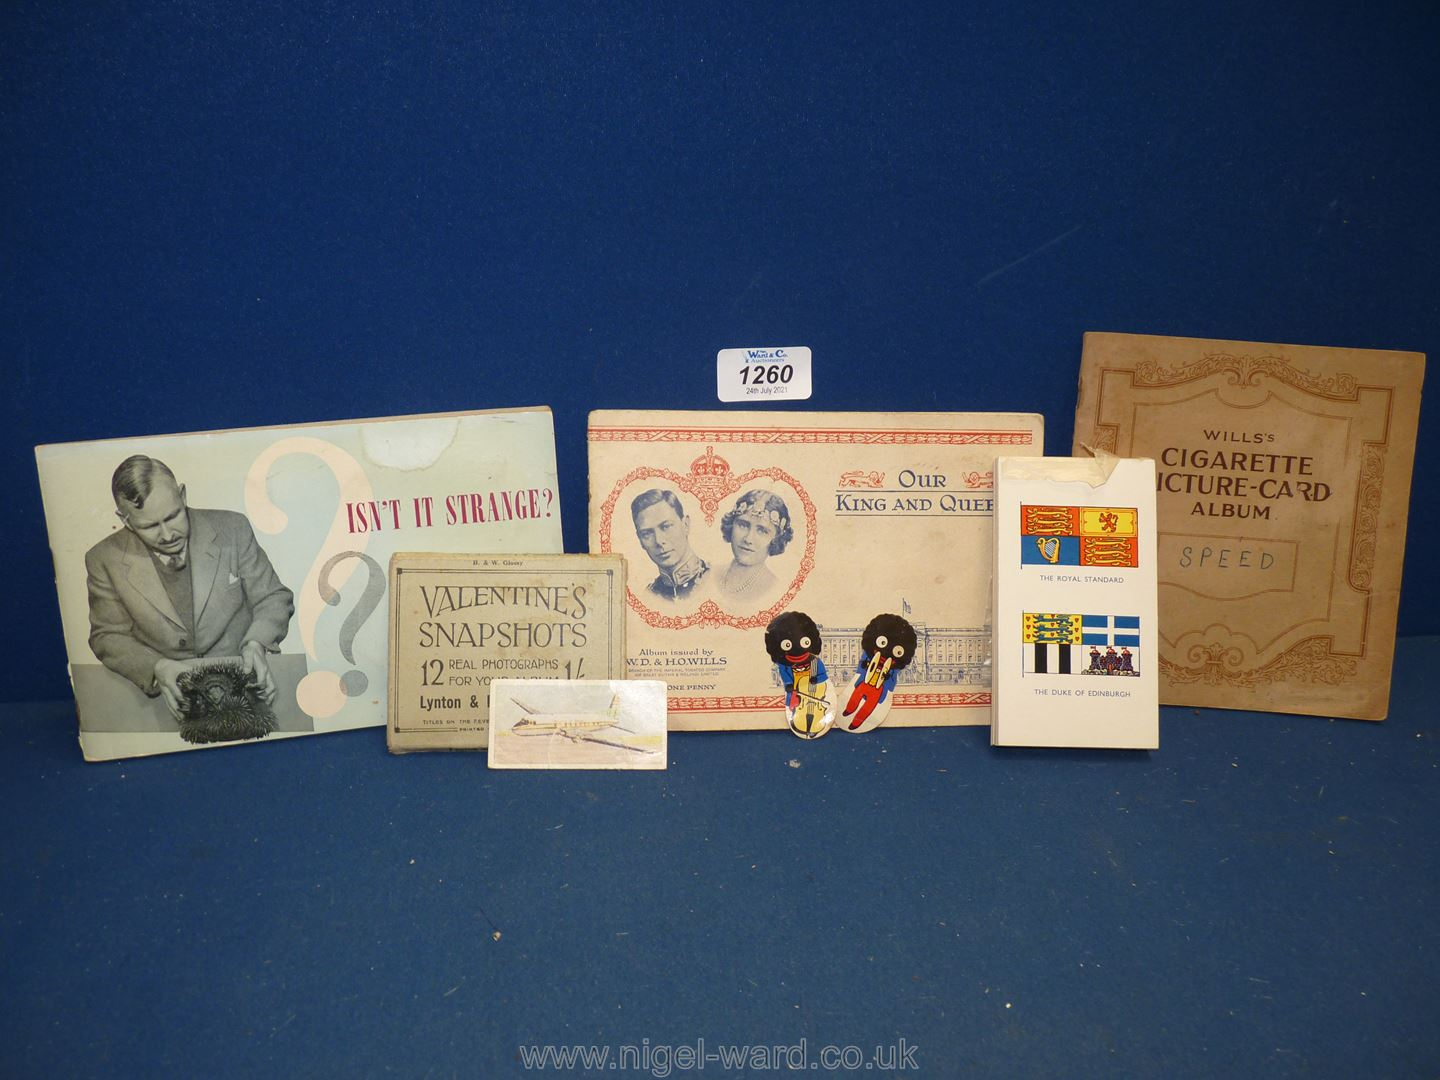 Two Cigarette Card albums, one Wills 'Speed' album, one W.D & H.O.